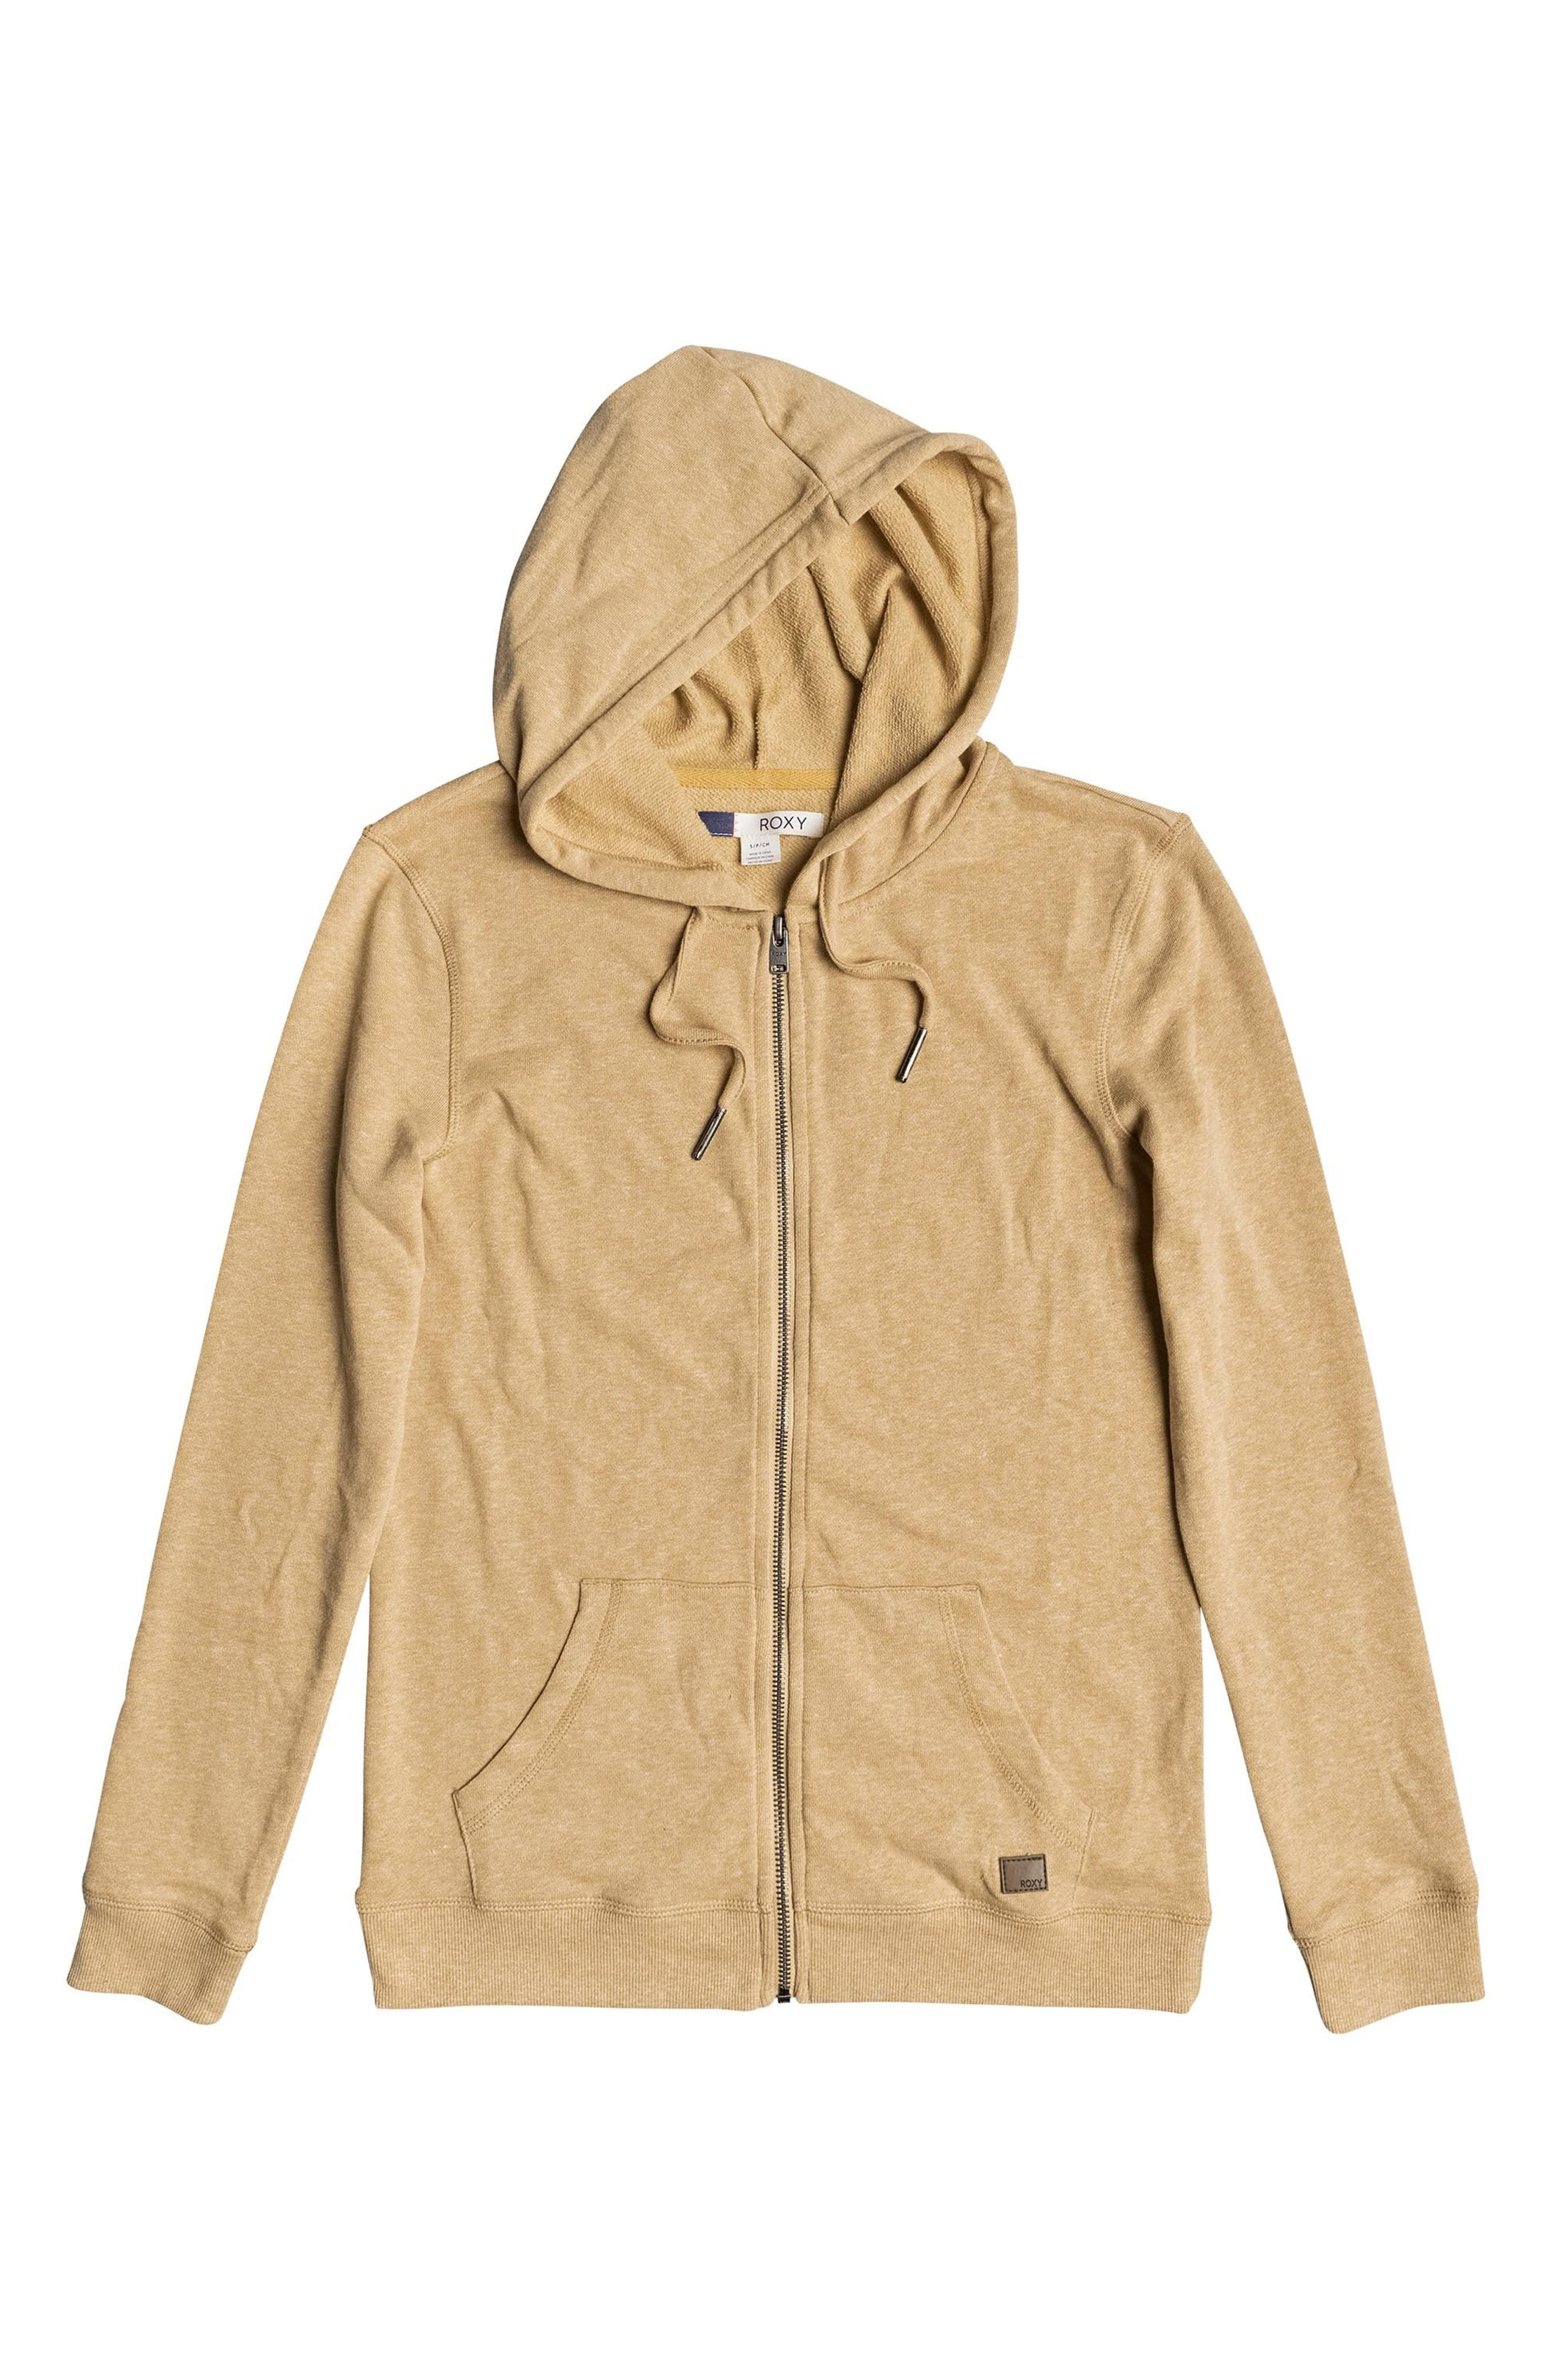 Trippin Hoodie,                             Alternate thumbnail 4, color,                             Buff Yellow Heather